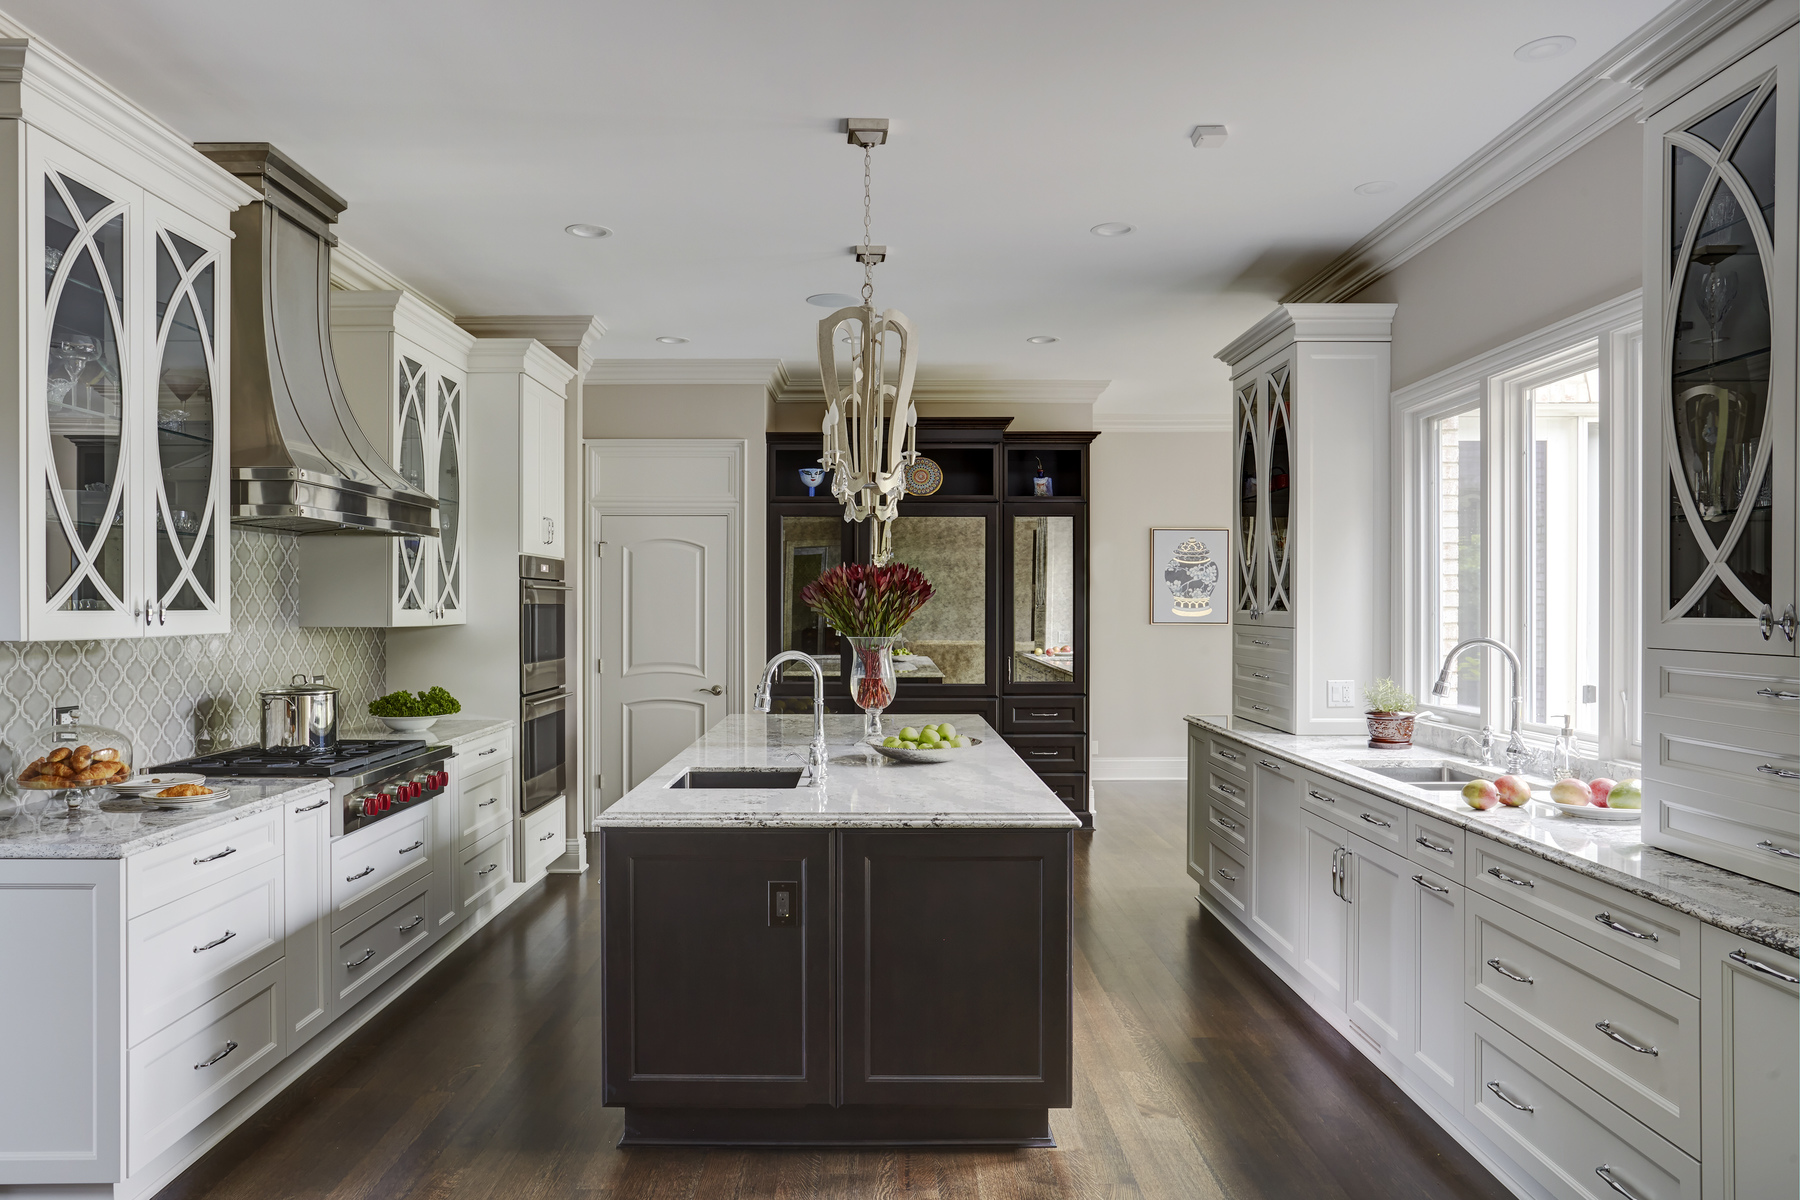 Everyday Cabinet Care & Cleaning